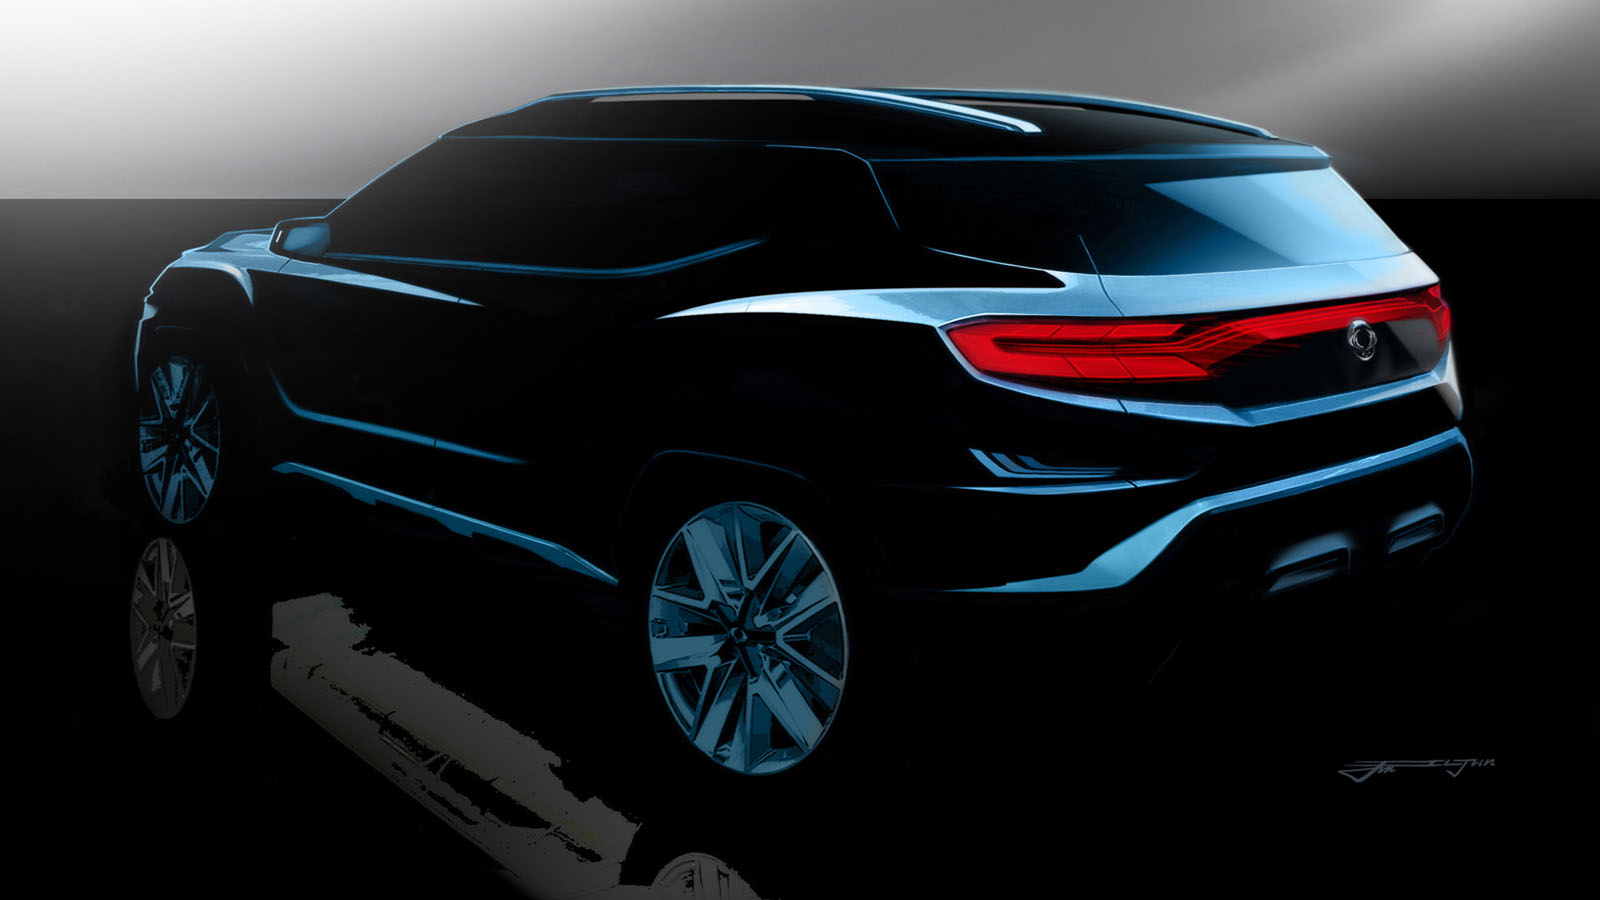 Concept SsangYong XAVL SUV Side Rear Profile